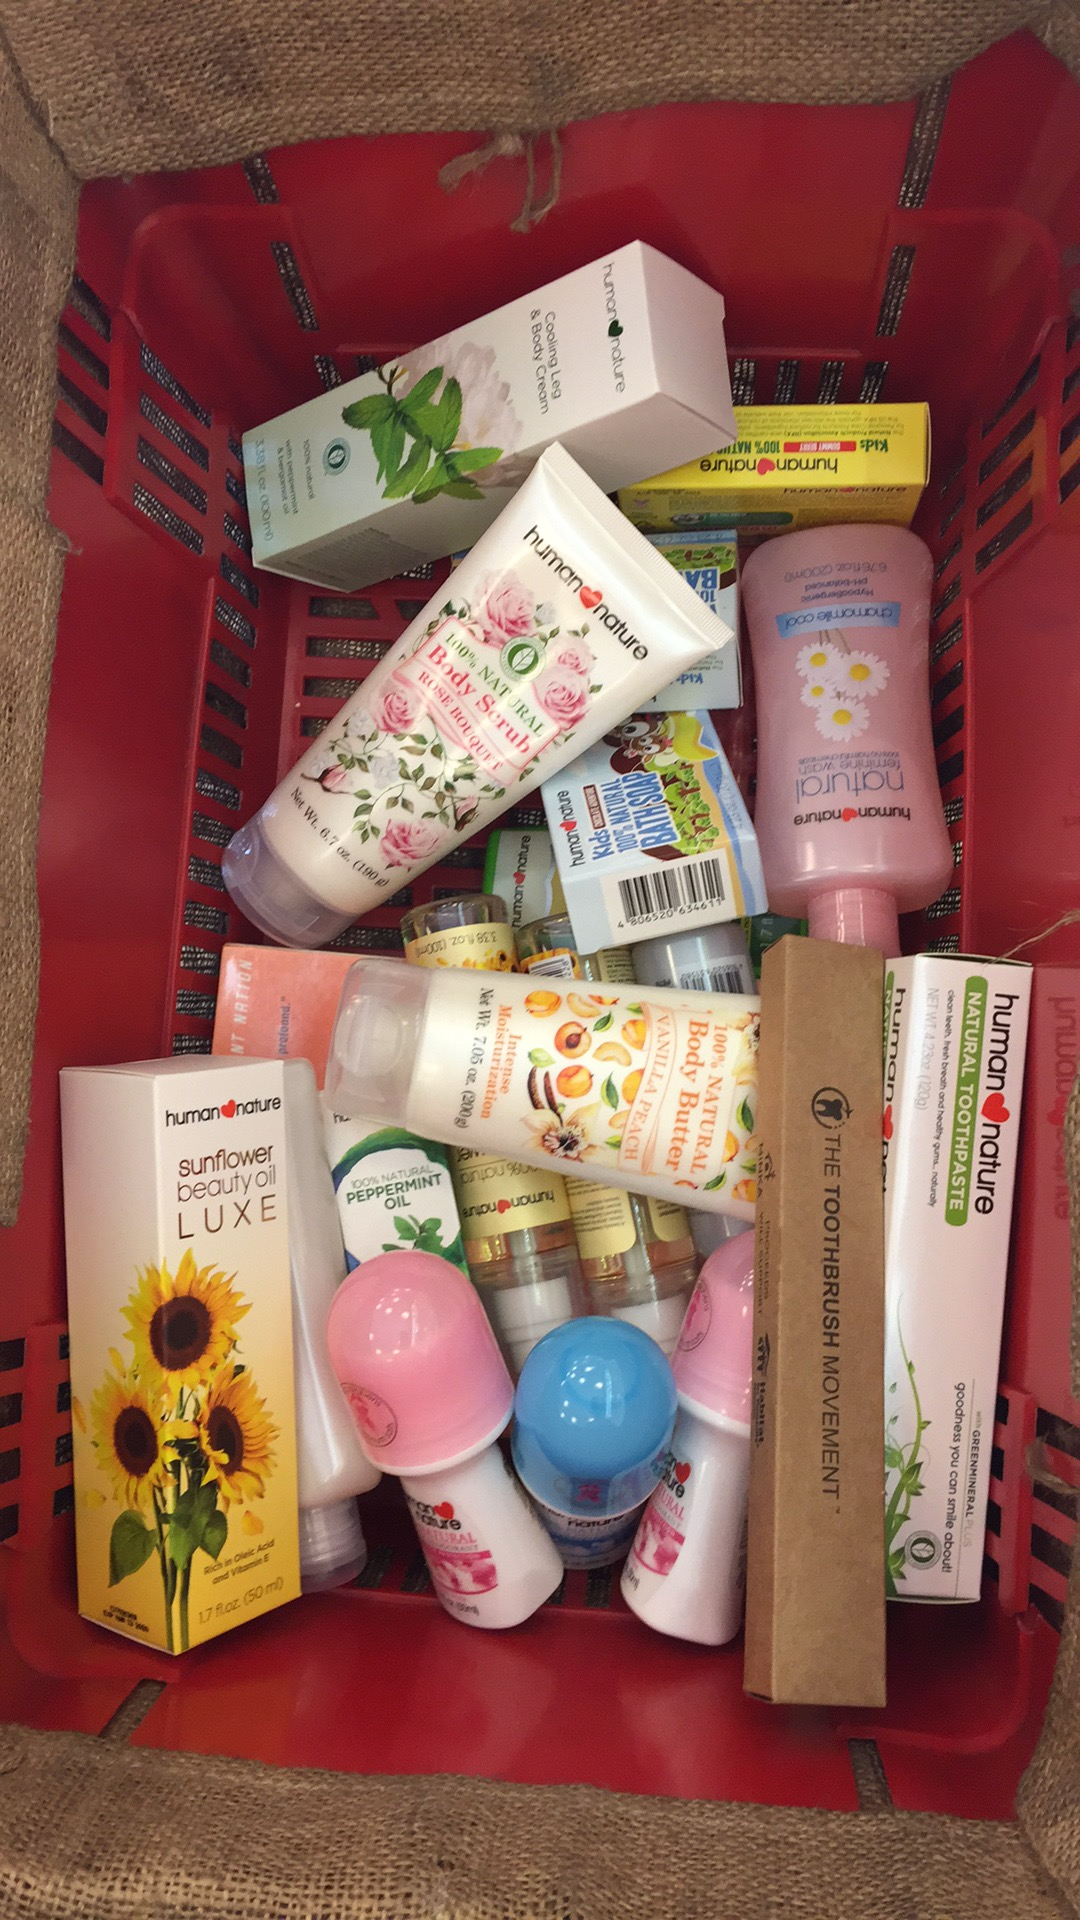 Yesterday's basket of my usual essentials